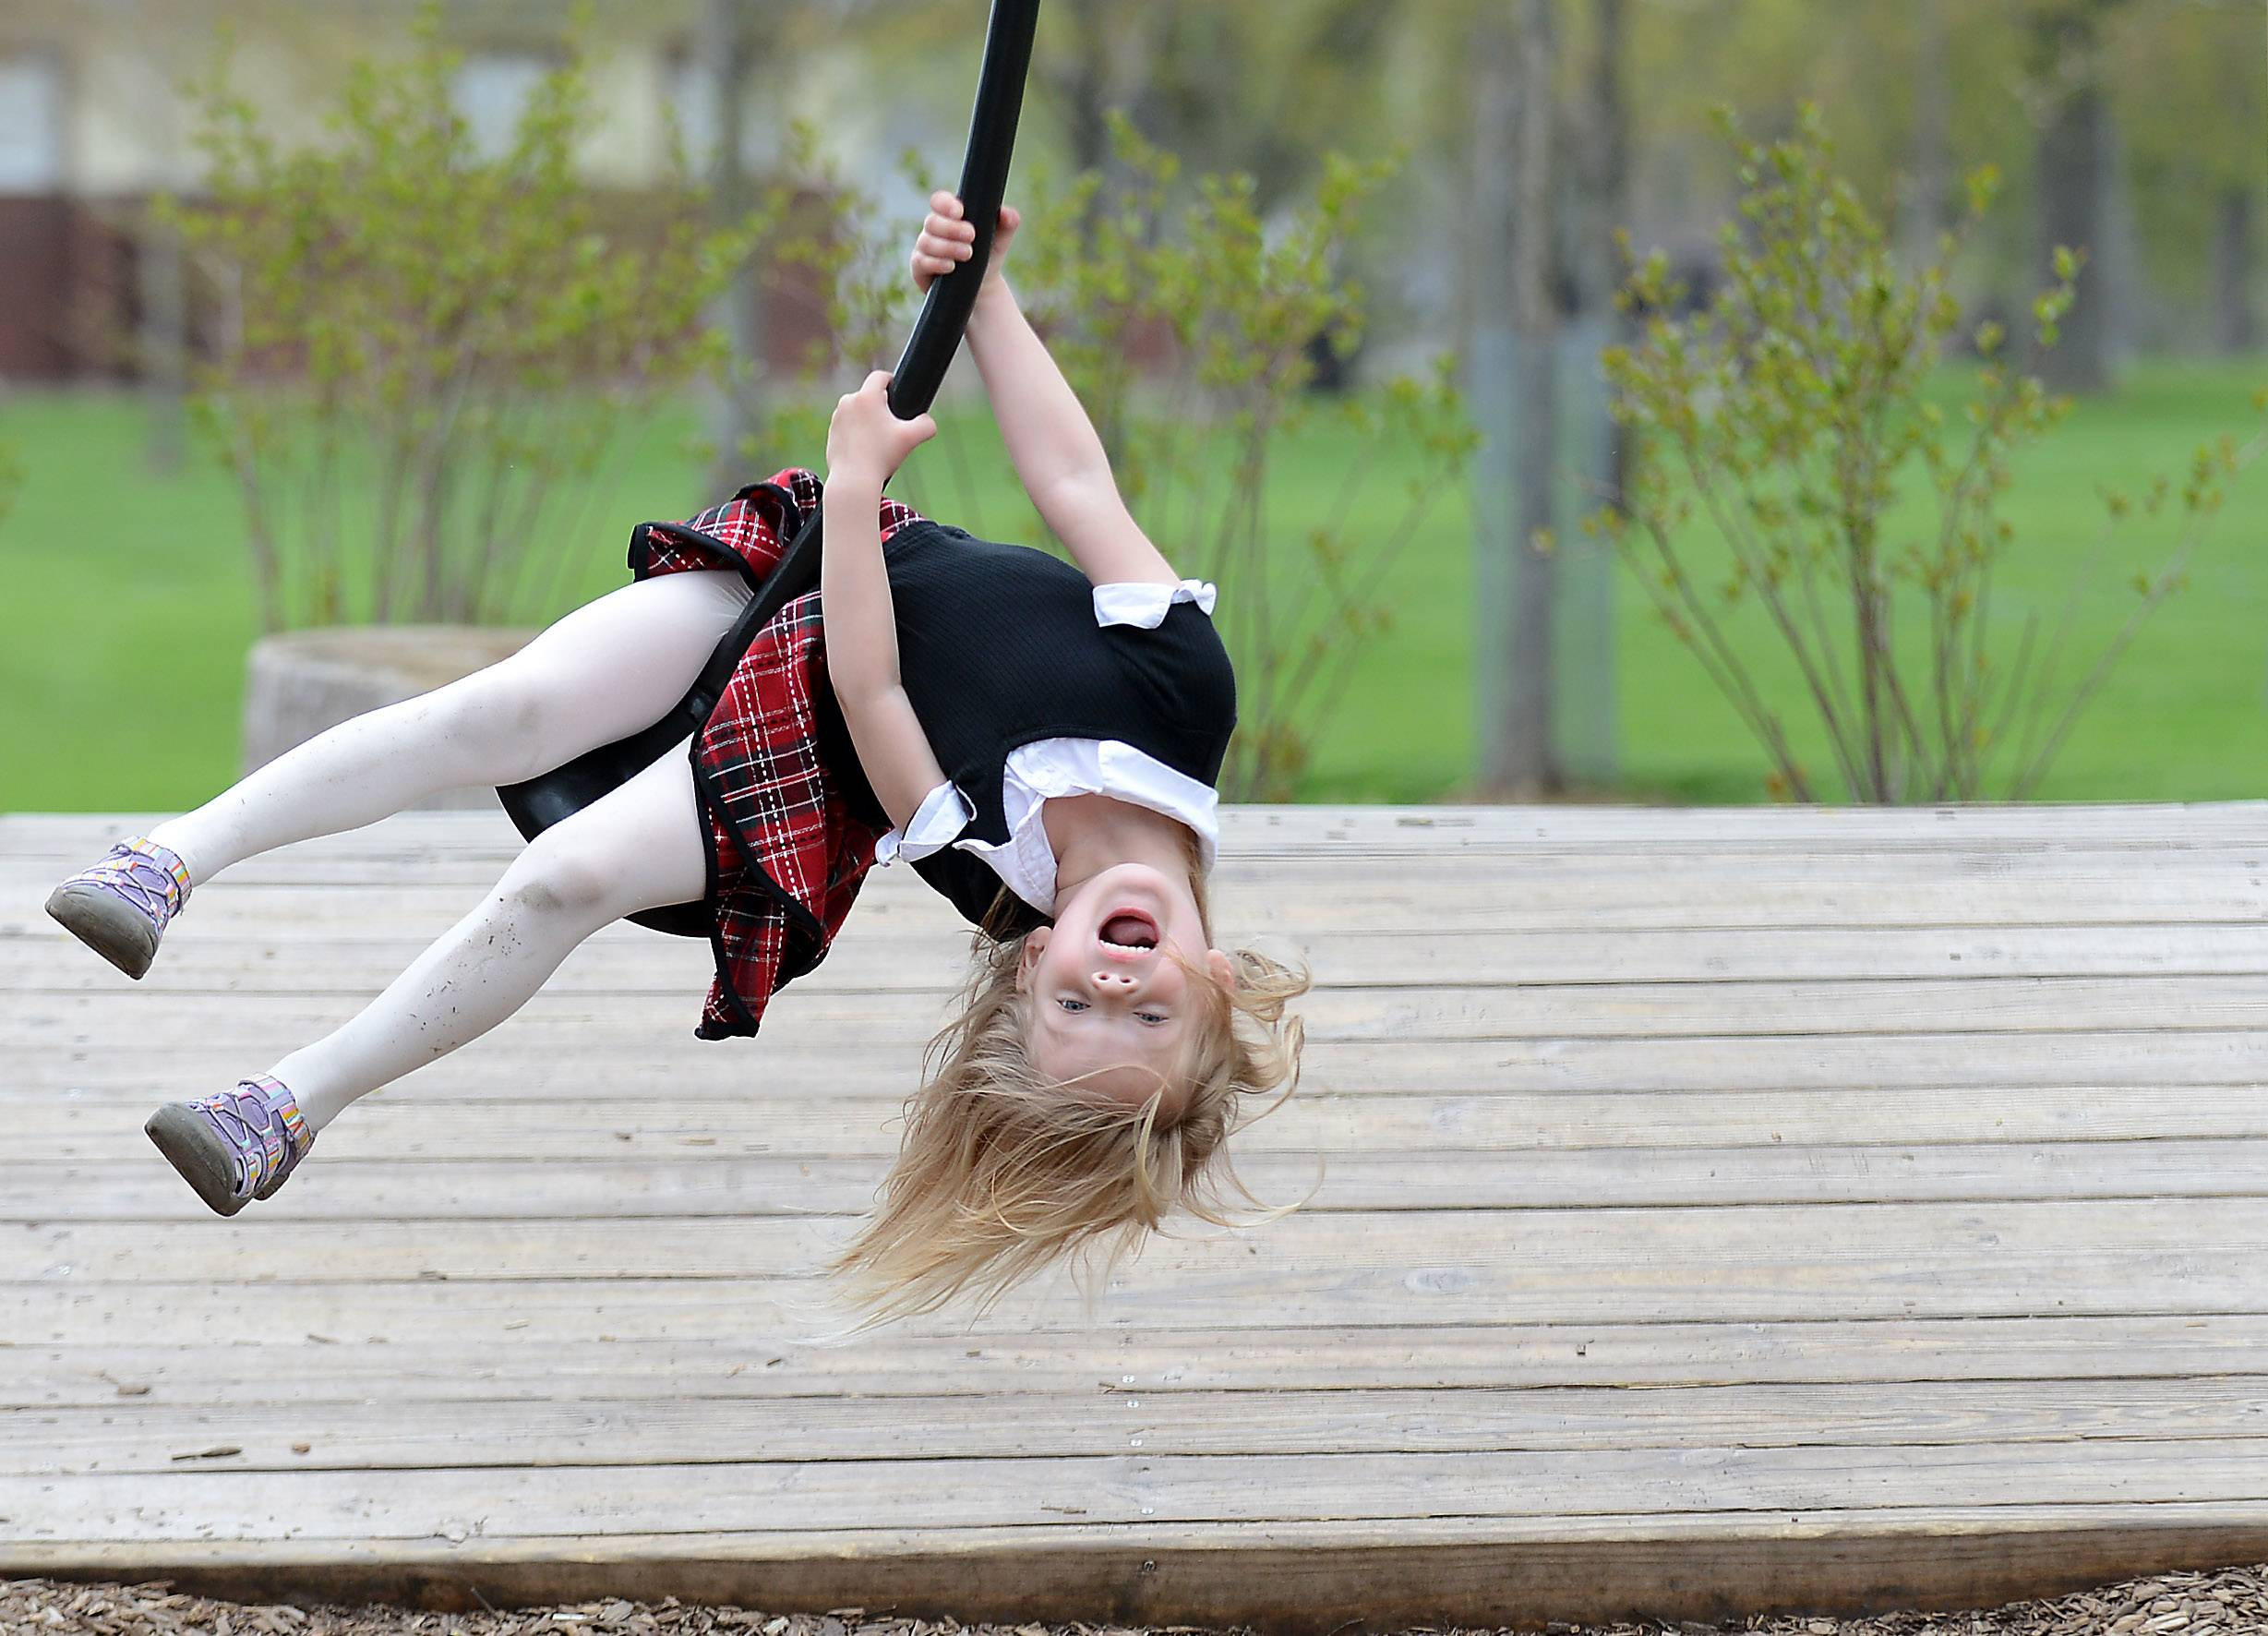 Violet Mustard, 4, of St. Charles, yells out to her mom to watch as she hangs upside down swinging on a playground zipline at Island Park in